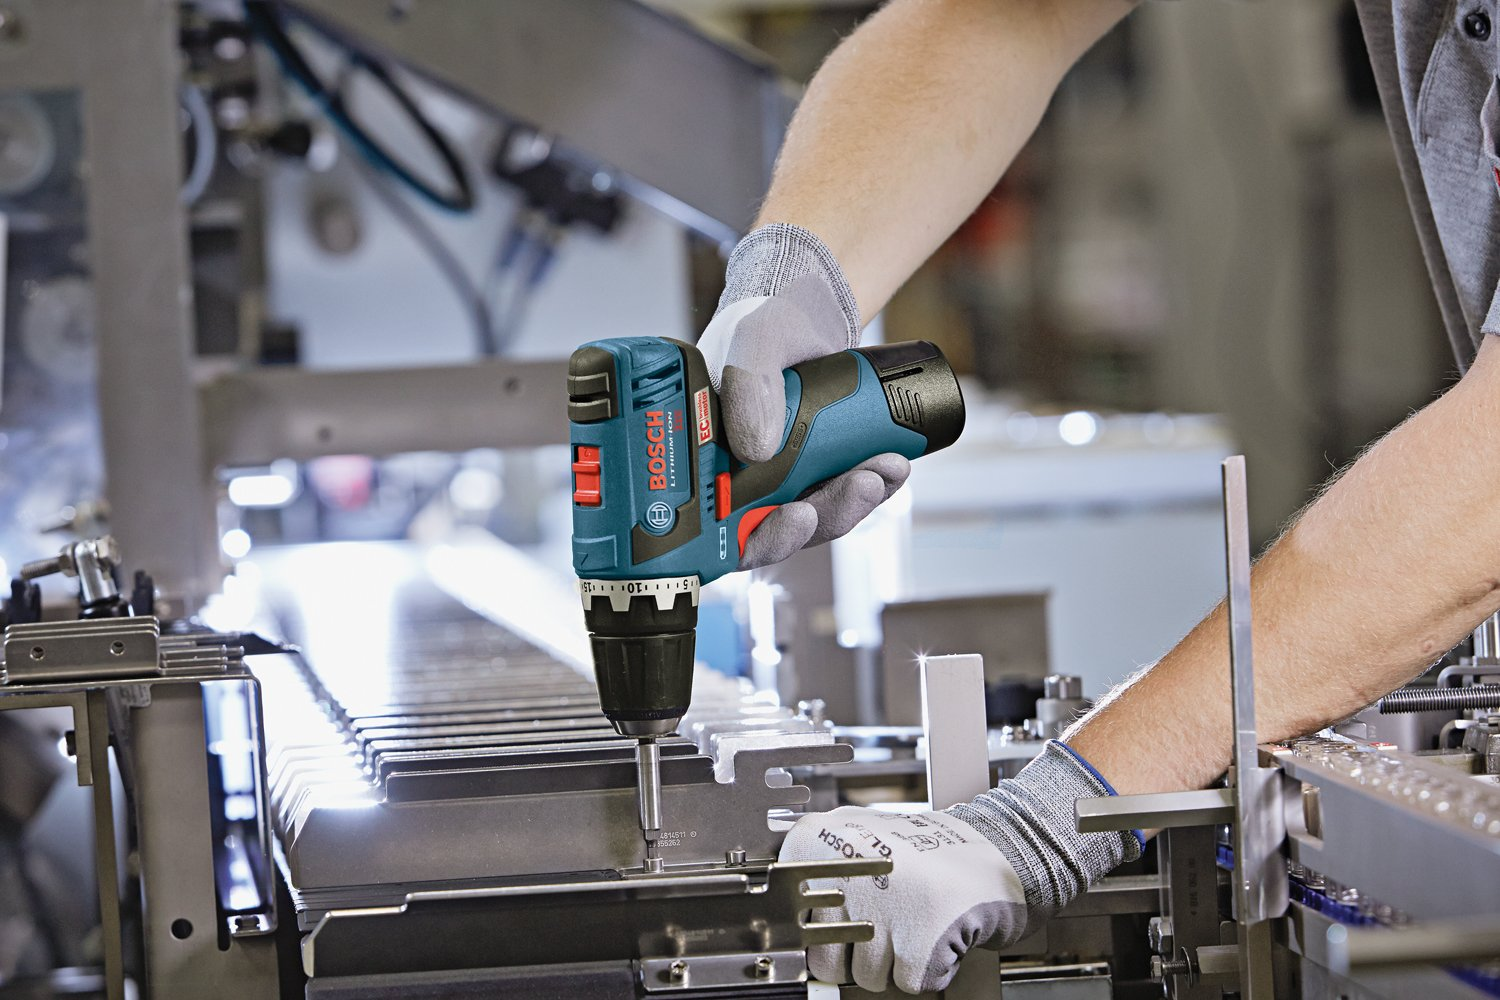 Bosch PS32BN Bare-Tool 12-volt Max Brushless 3/8-Inch Drill/Driver with Insert Tray for L-Boxx by Bosch (Image #2)